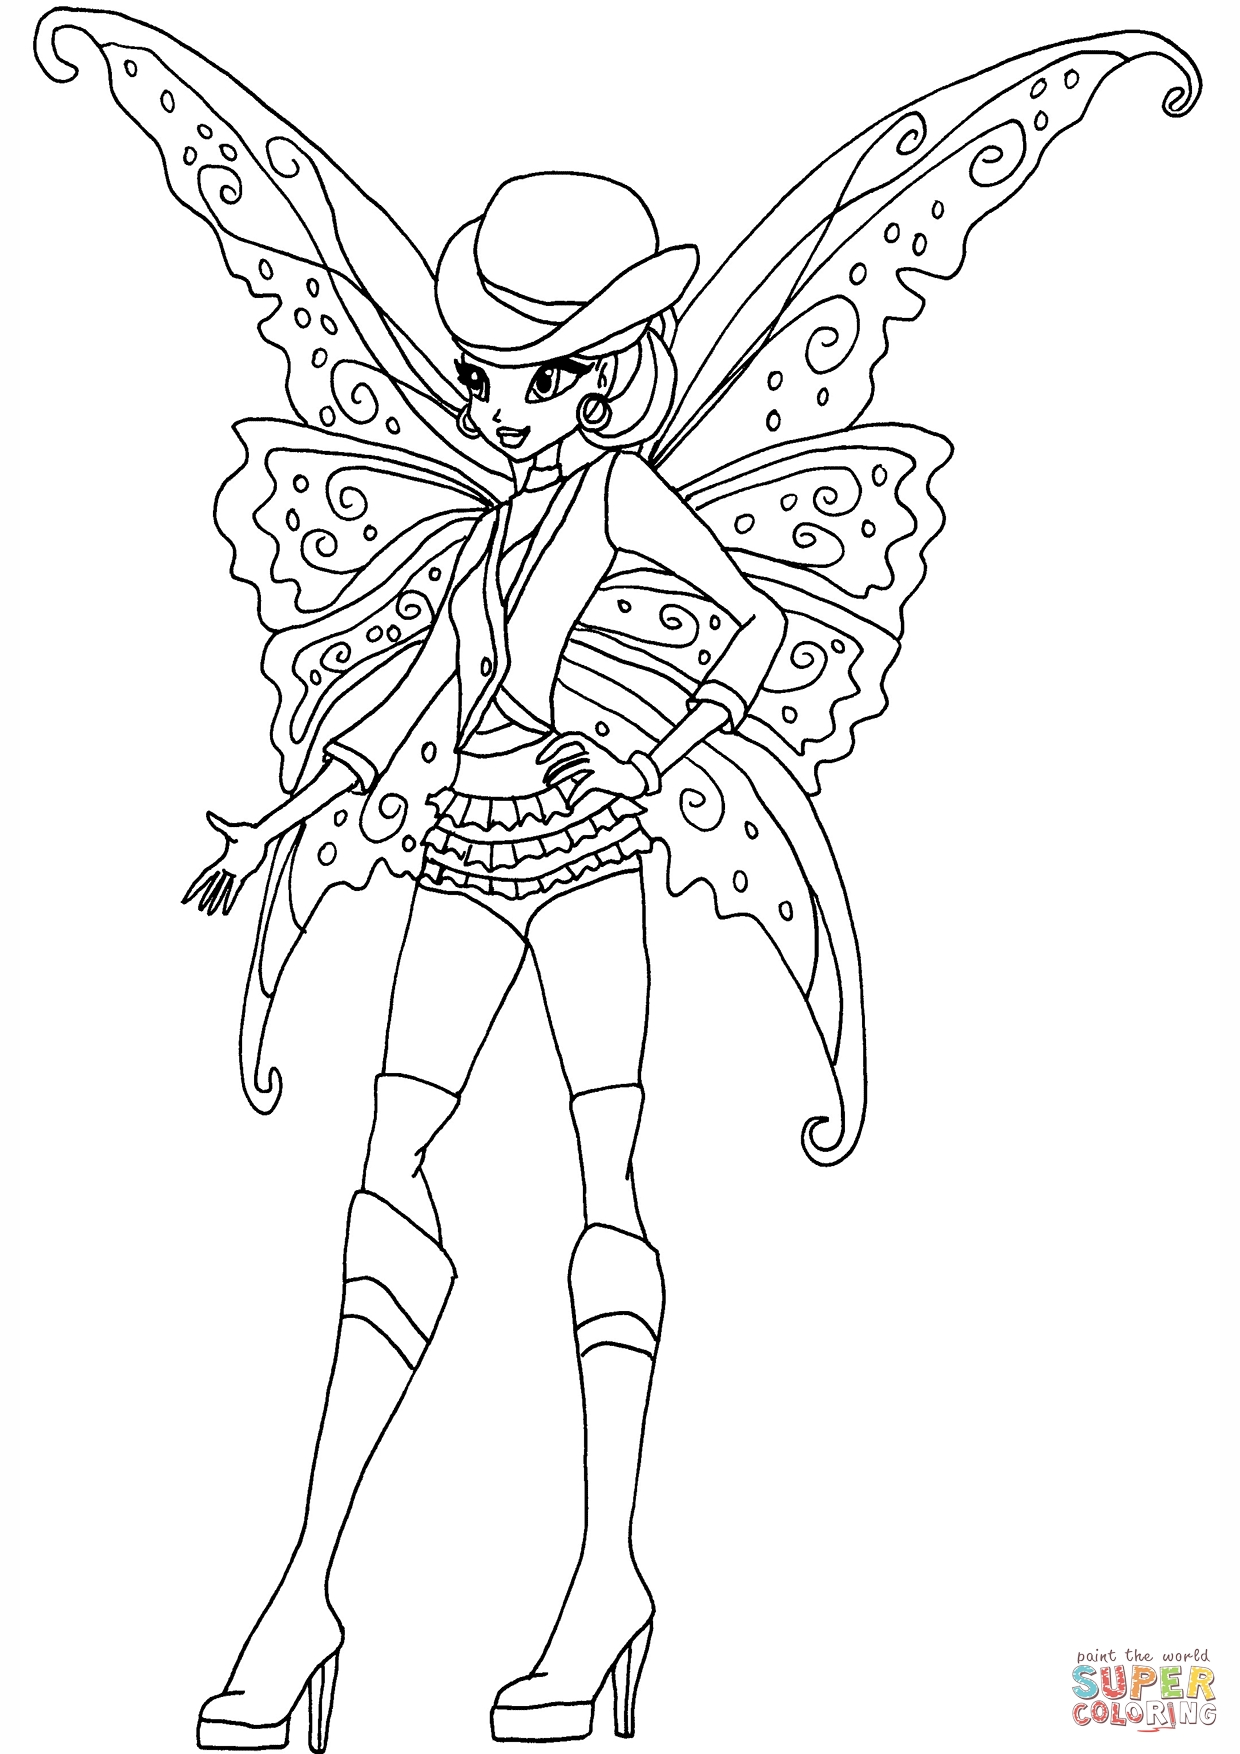 printable gothic fairy coloring pages gothic flora coloring page free printable coloring pages gothic fairy coloring printable pages